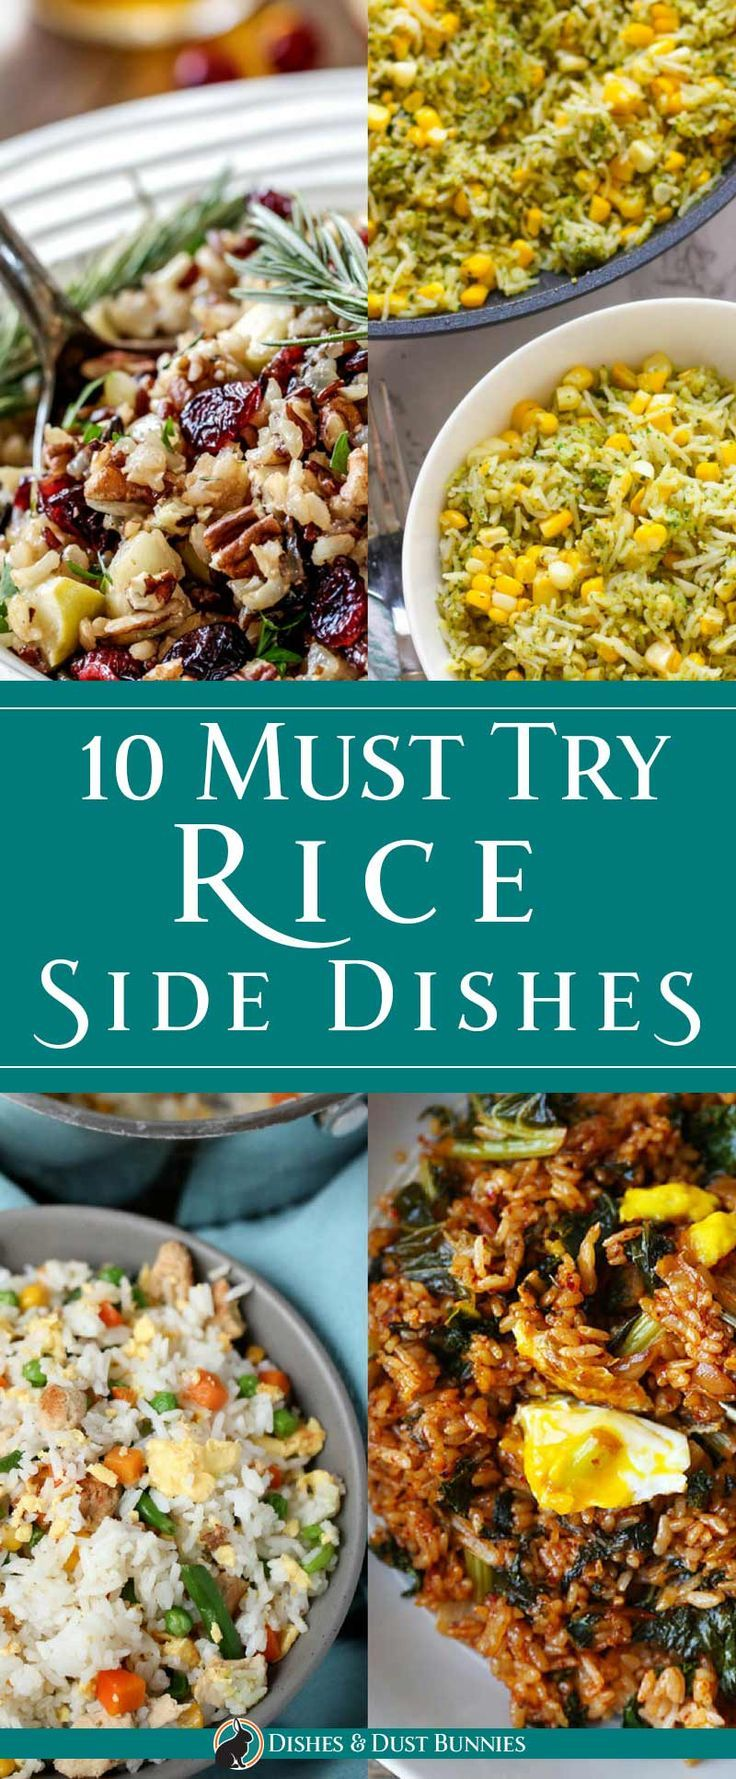 11 Must Try Rice Side Dishes via @mvdustbunnies